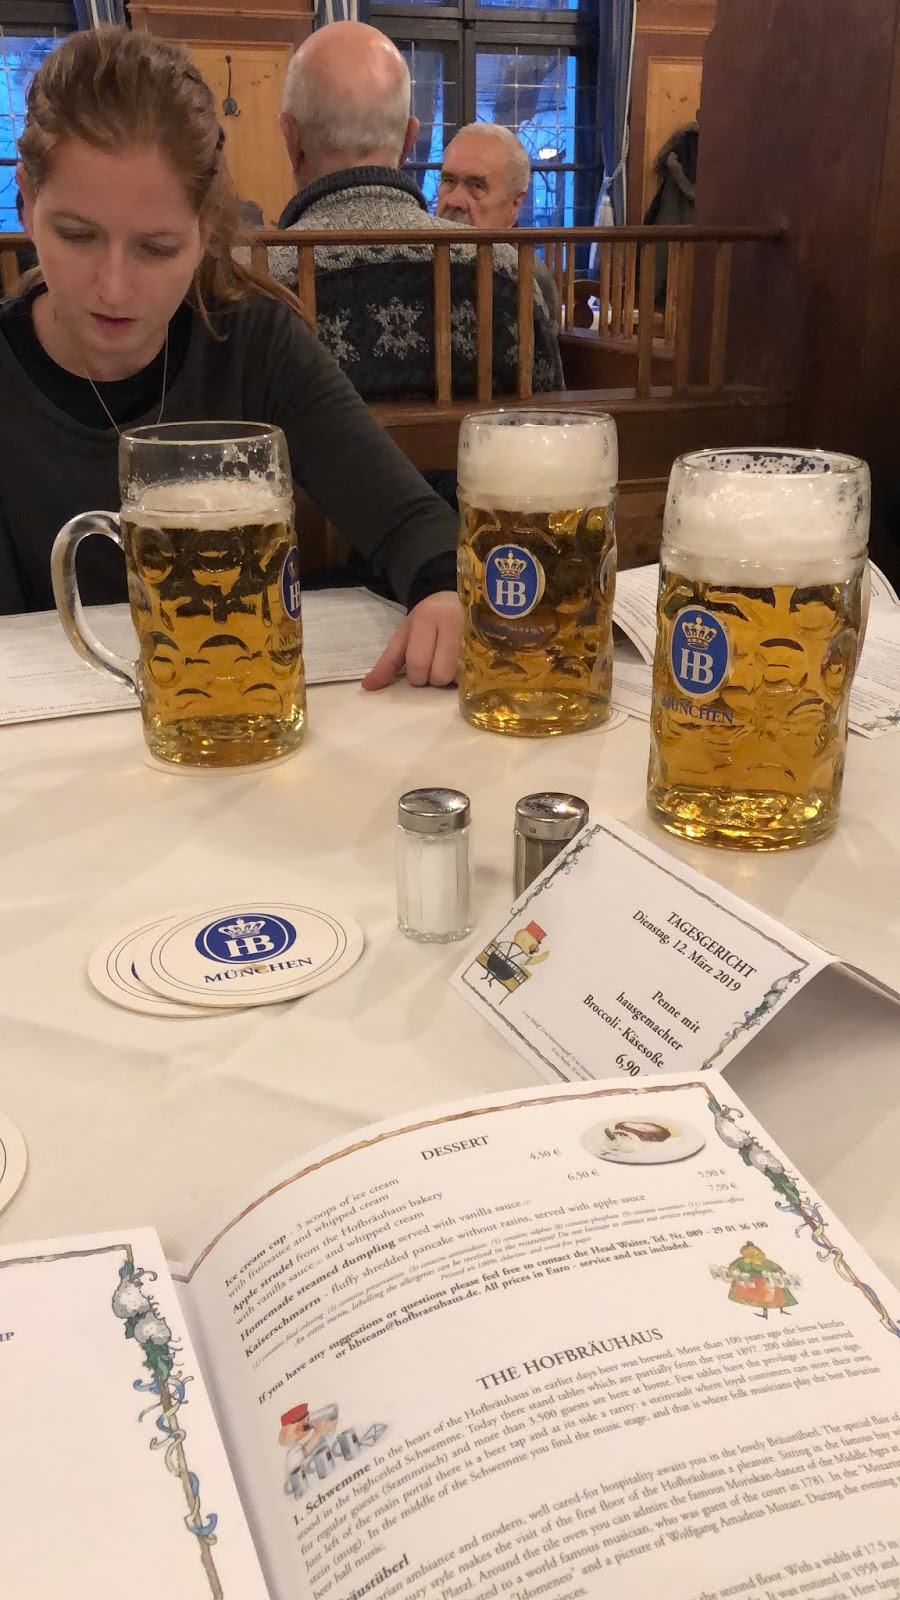 three large liters of beer in munich, germany